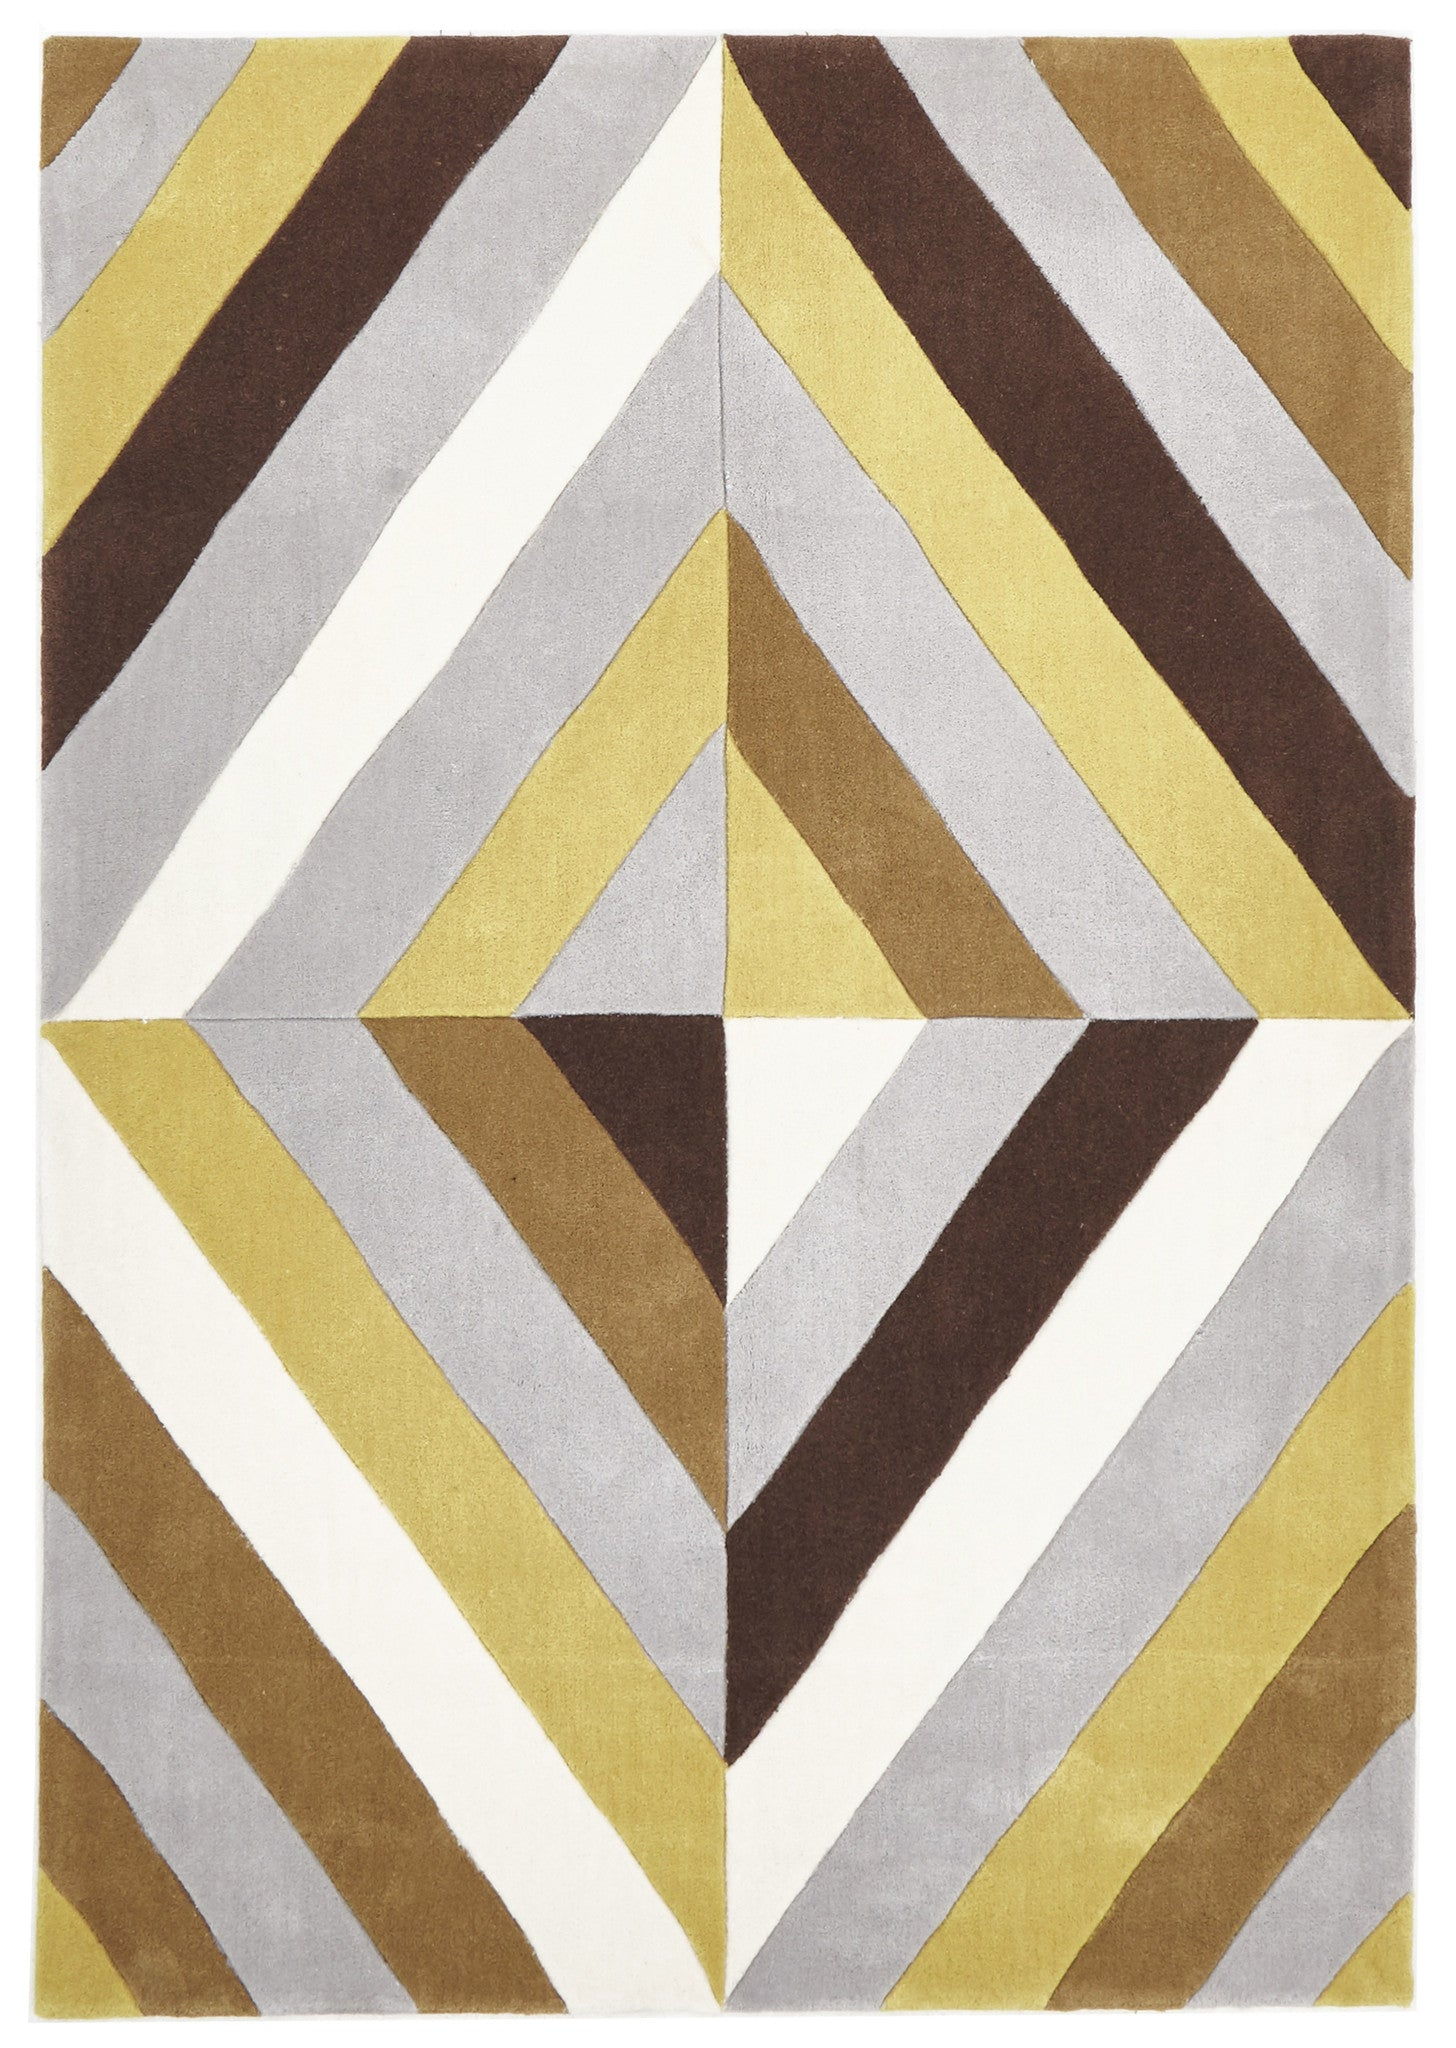 Gold 636 Rug - Yellow Brown Grey